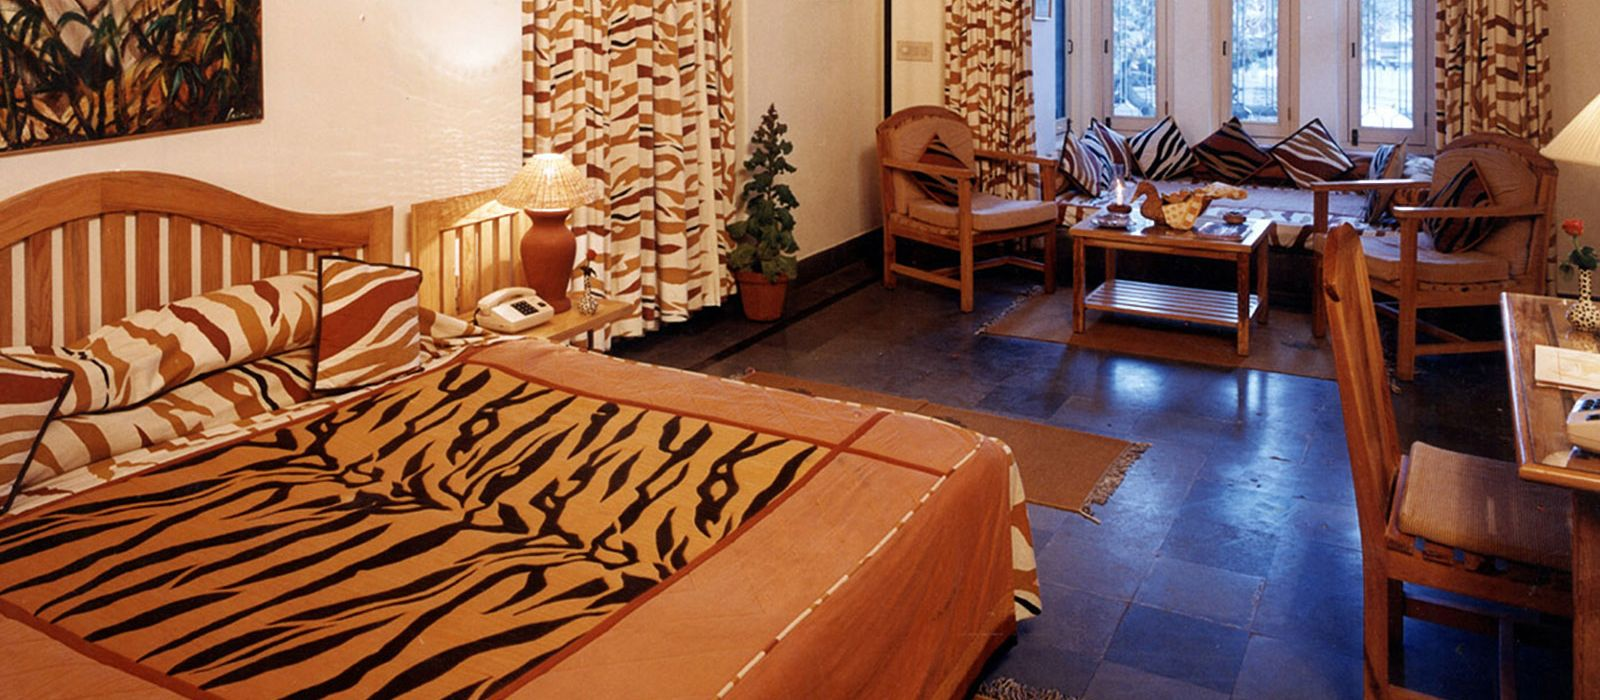 Hotel The Aodhi North India